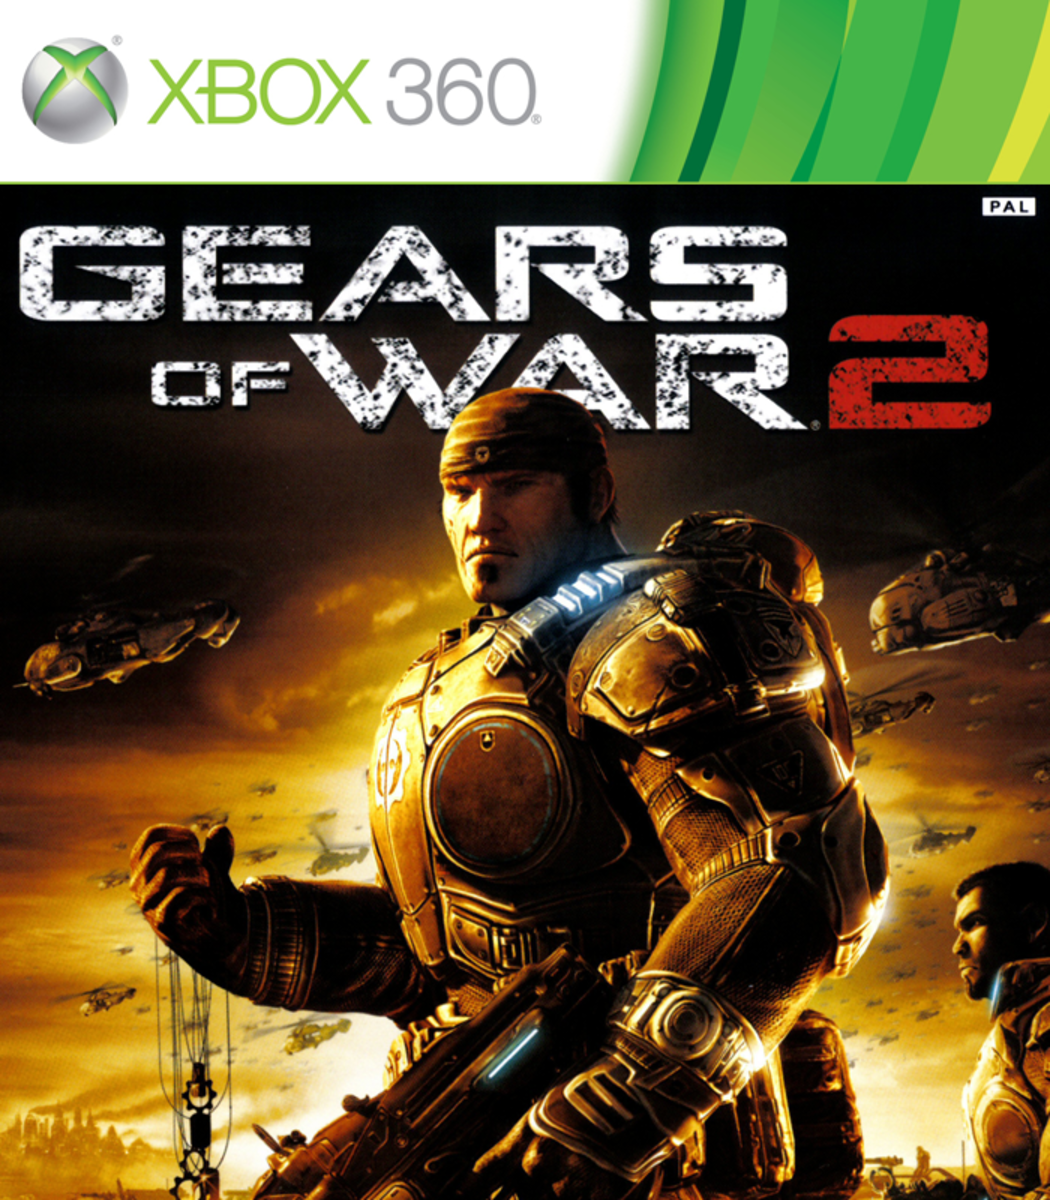 Gears of War 2 XBOX 360 game cover